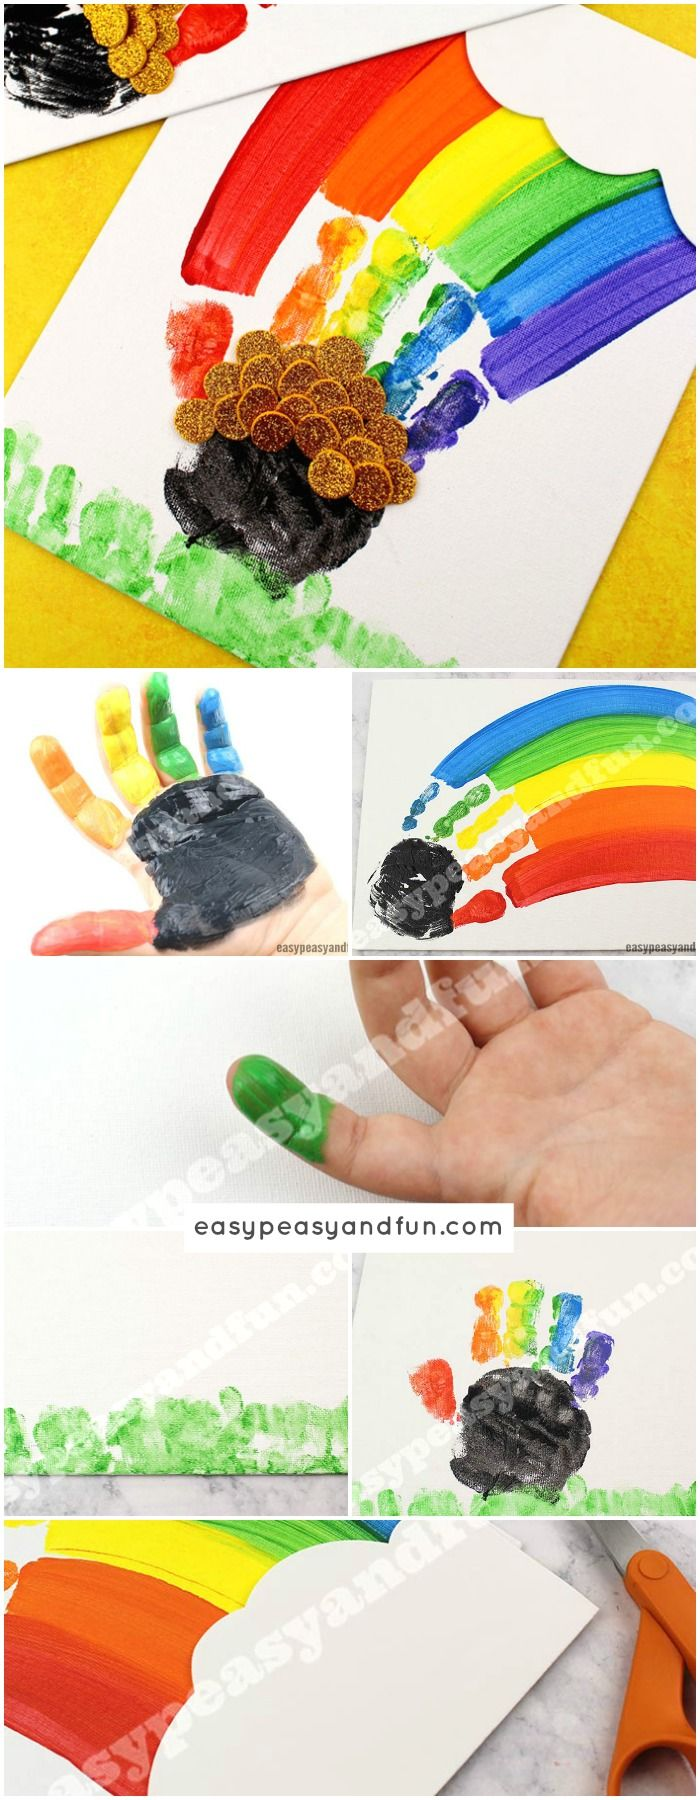 St. Patrick's Day Handprint Rainbow Art Idea for Kids #Handprintart #Rainbowart #artforkids